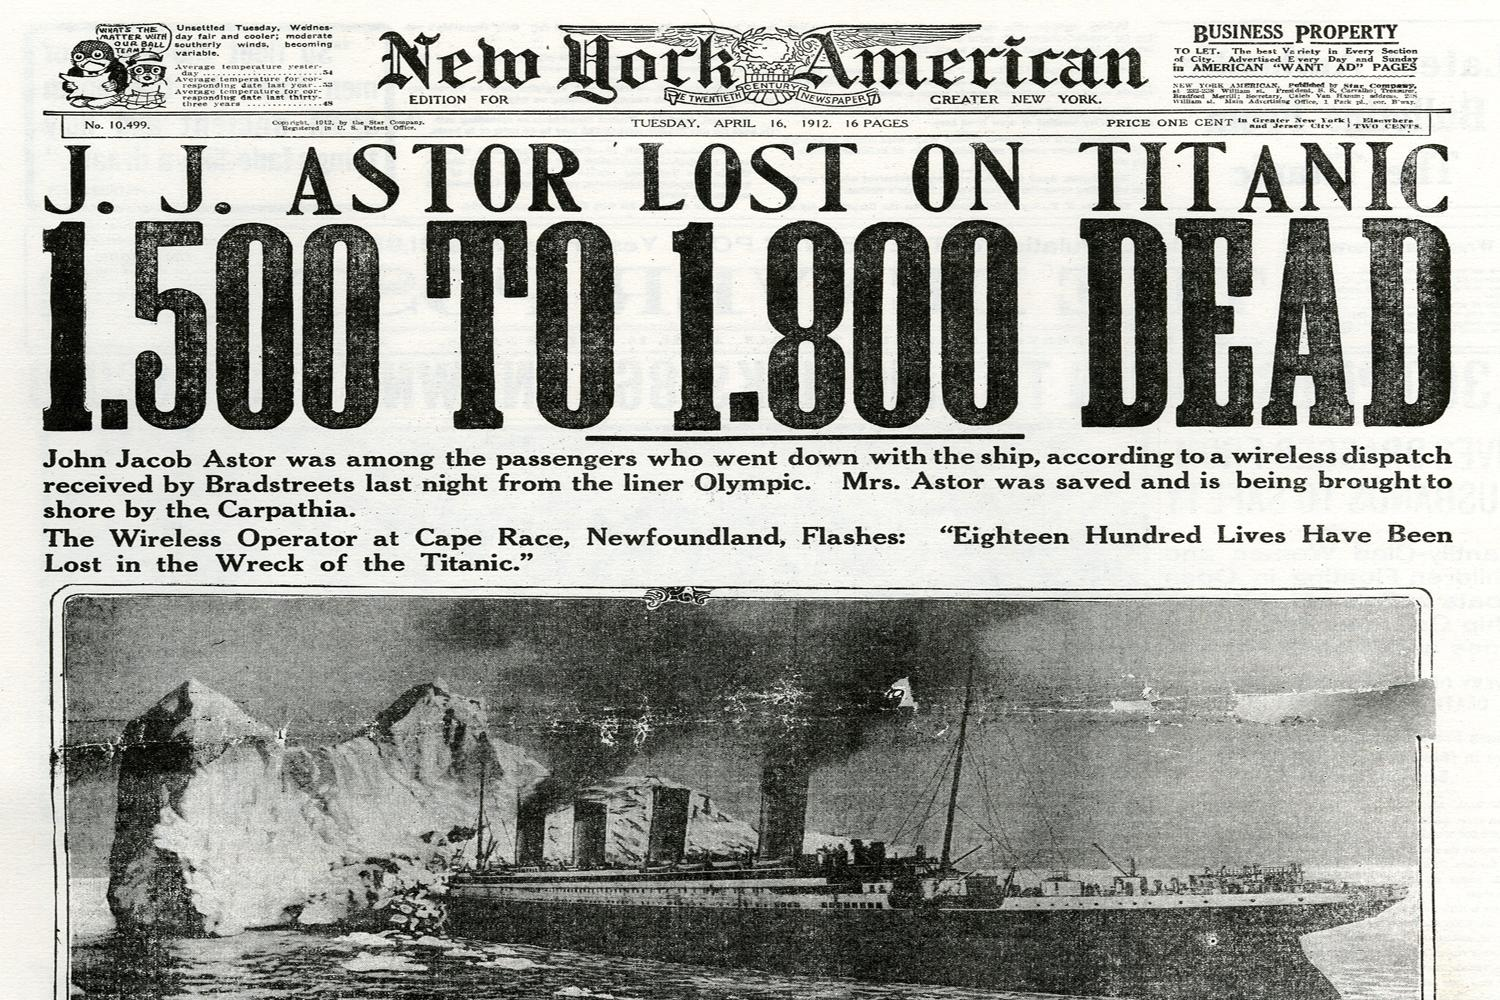 titanic-new-york-american-coverage